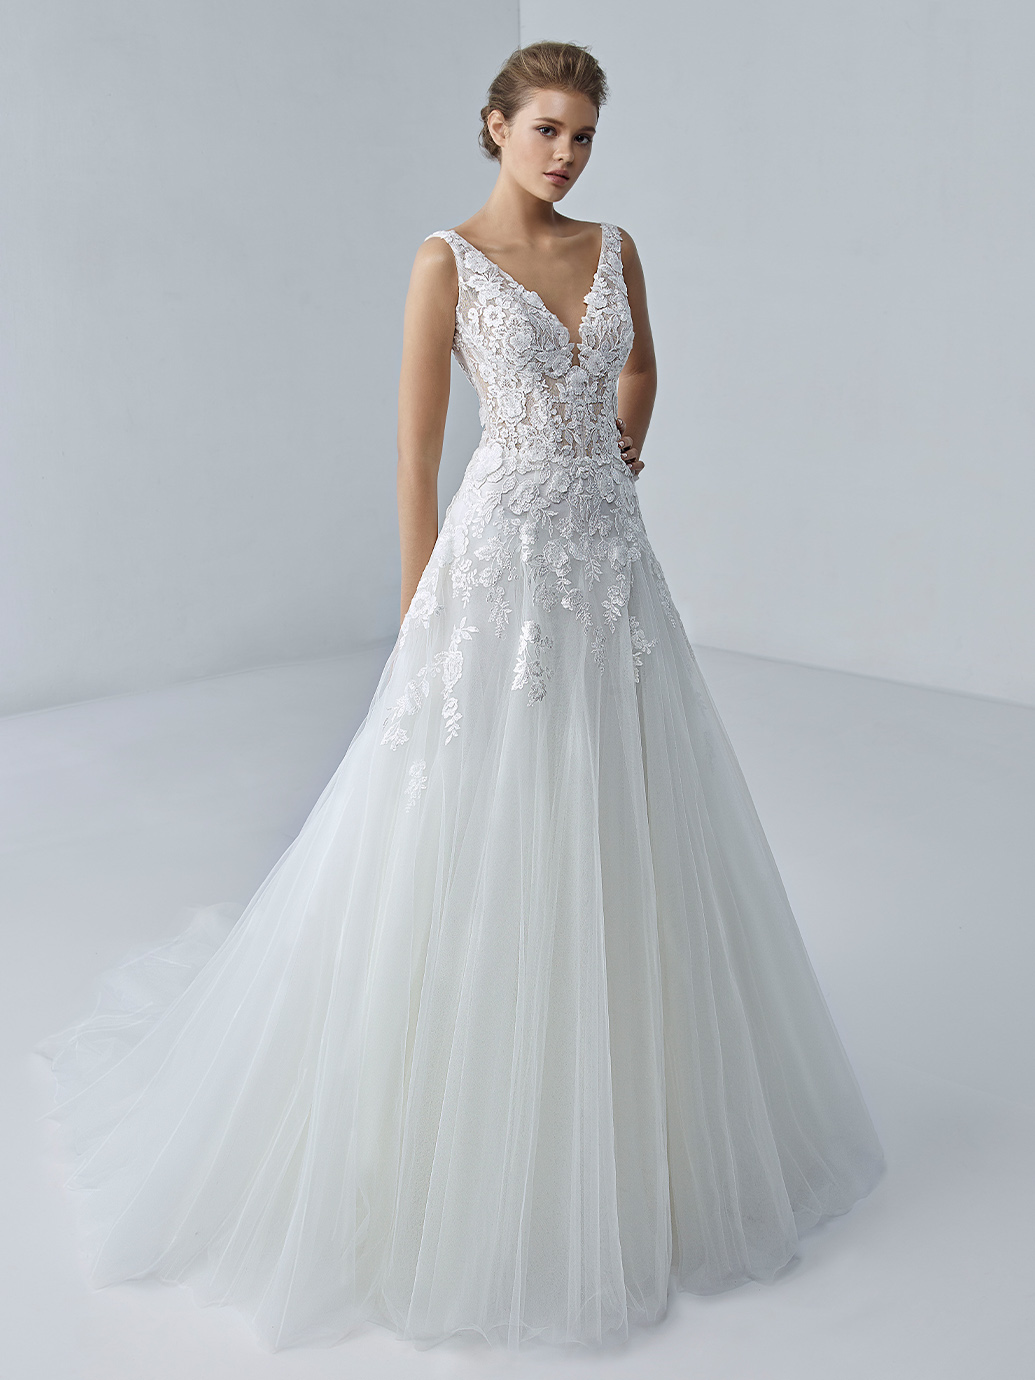 étoile-by-enzoani-2021-Dress-Finderétoile-by-enzoani-2021-Dress-Finder-Alaina